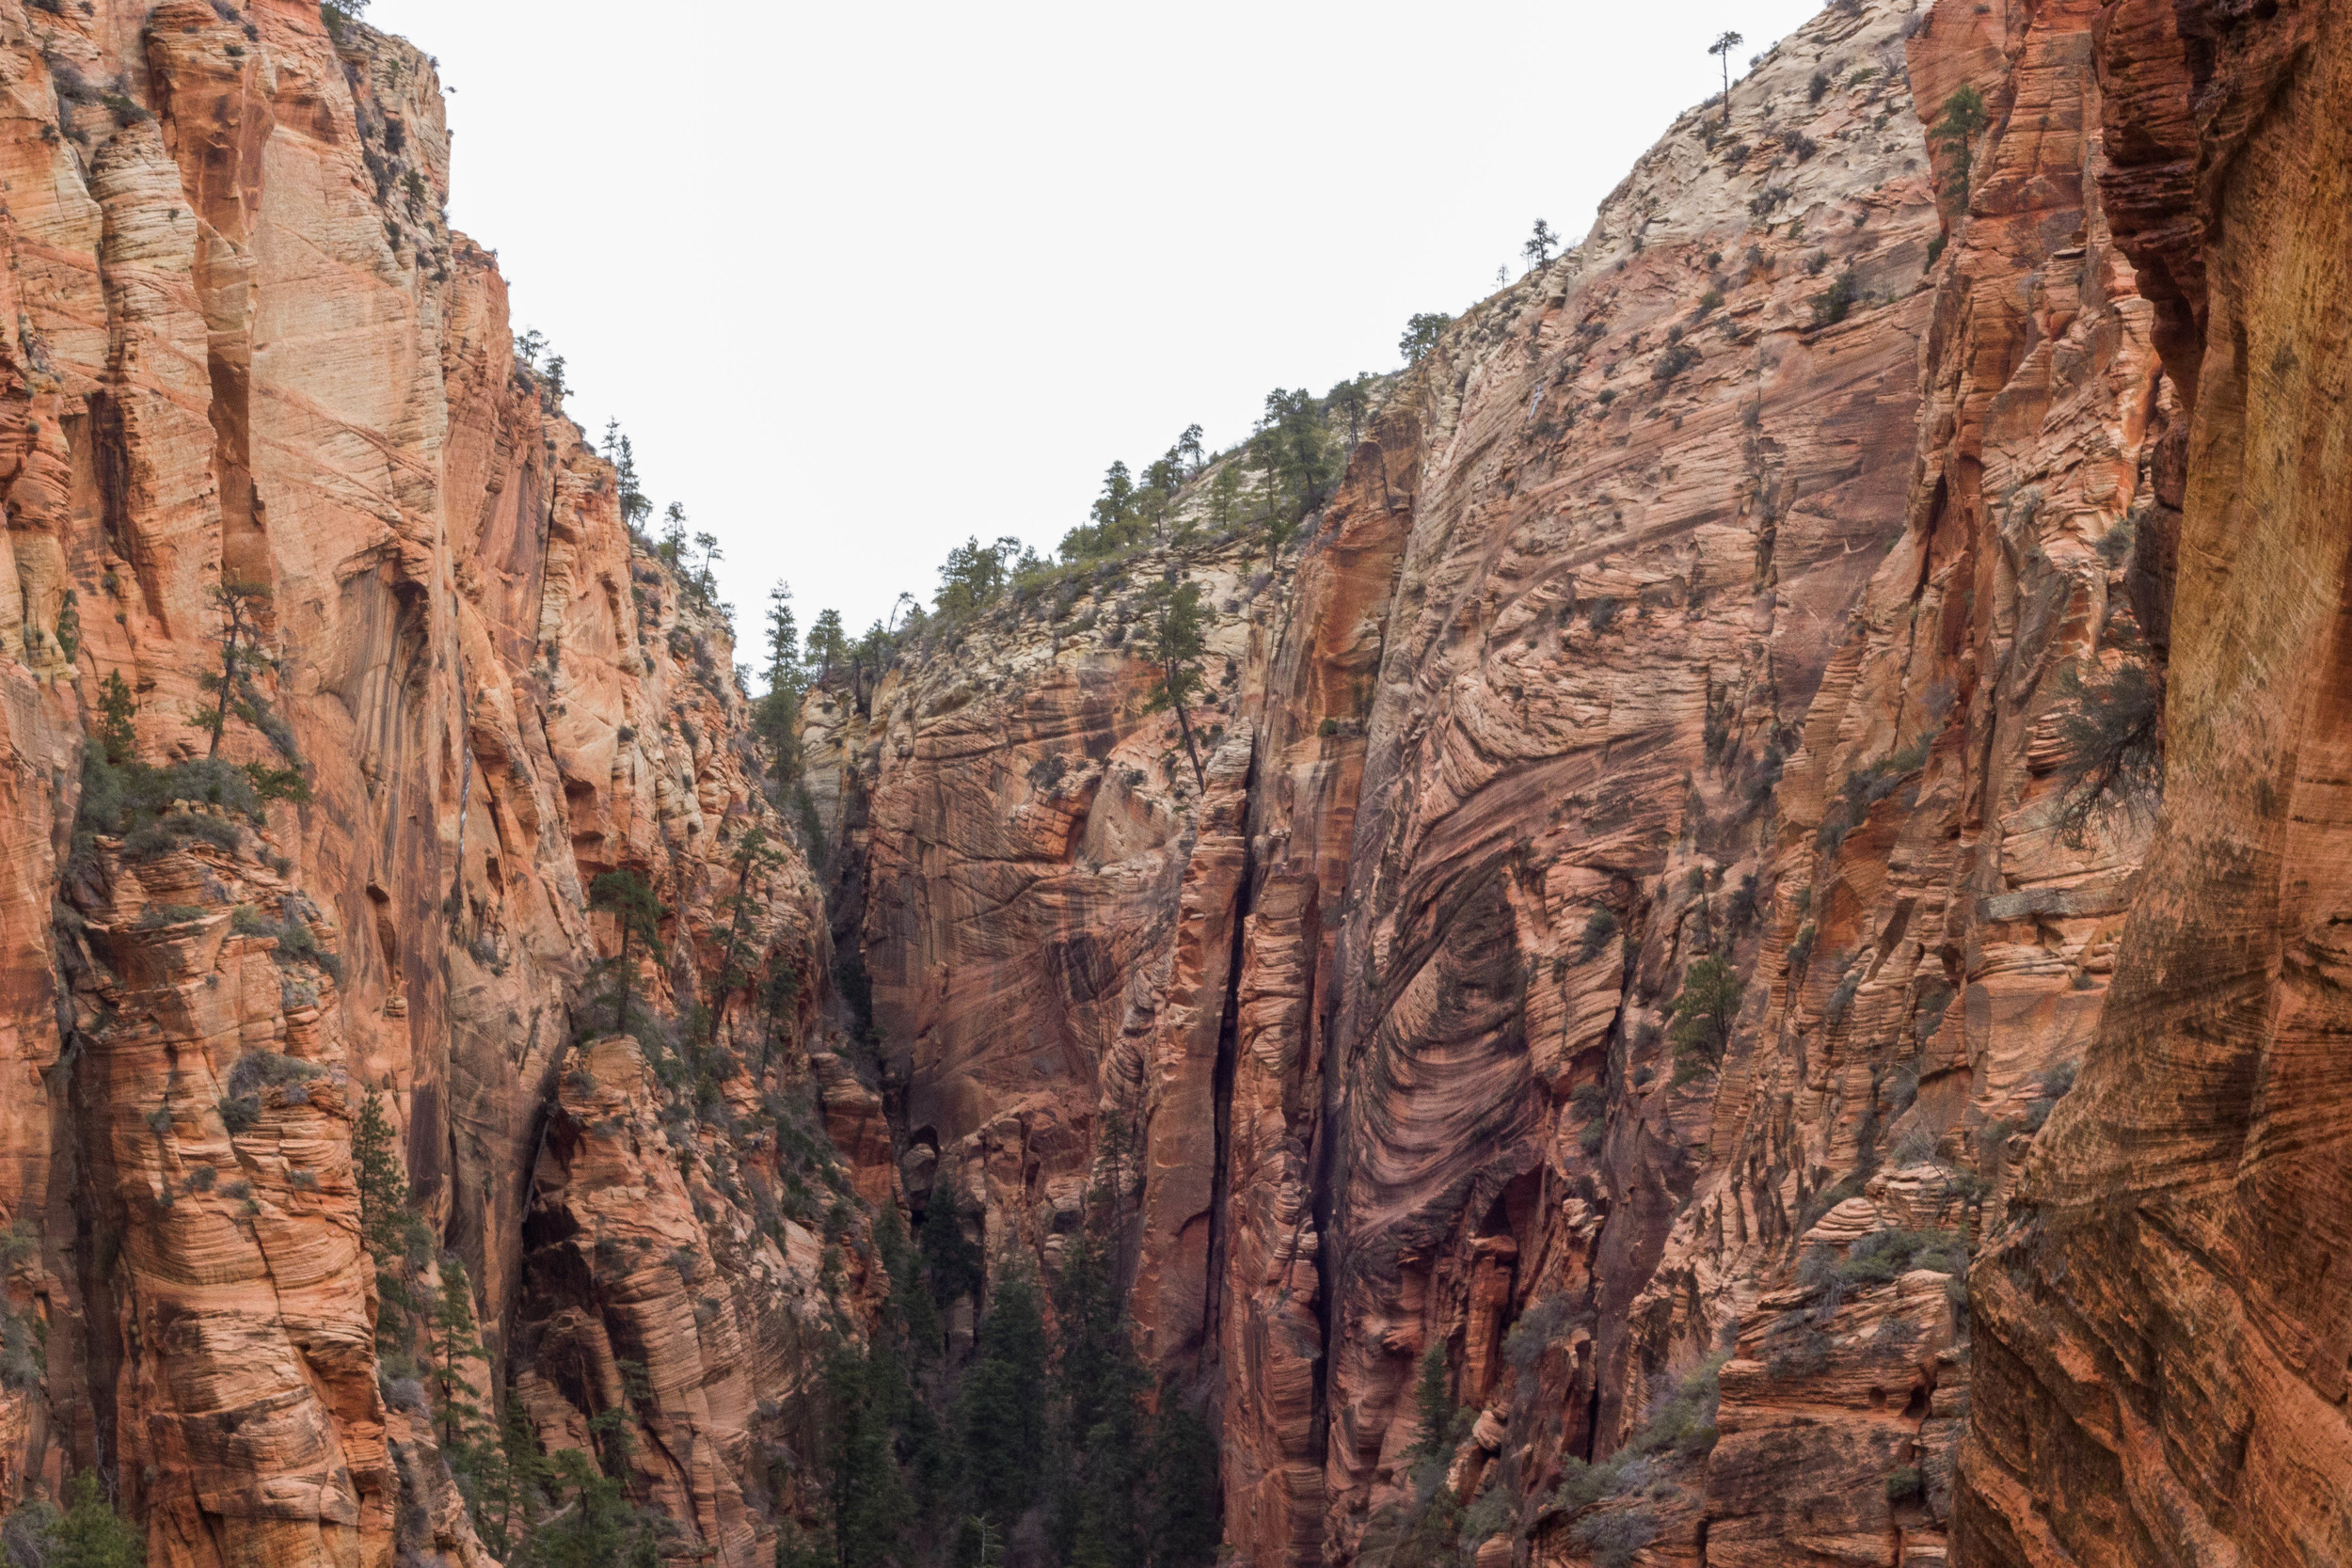 The Angels Landing trail gives hikers a scenic view of the mountains of Zion National Park in Hurricane, Utah Wednesday morning. (Photo by Gretchen Burnton)